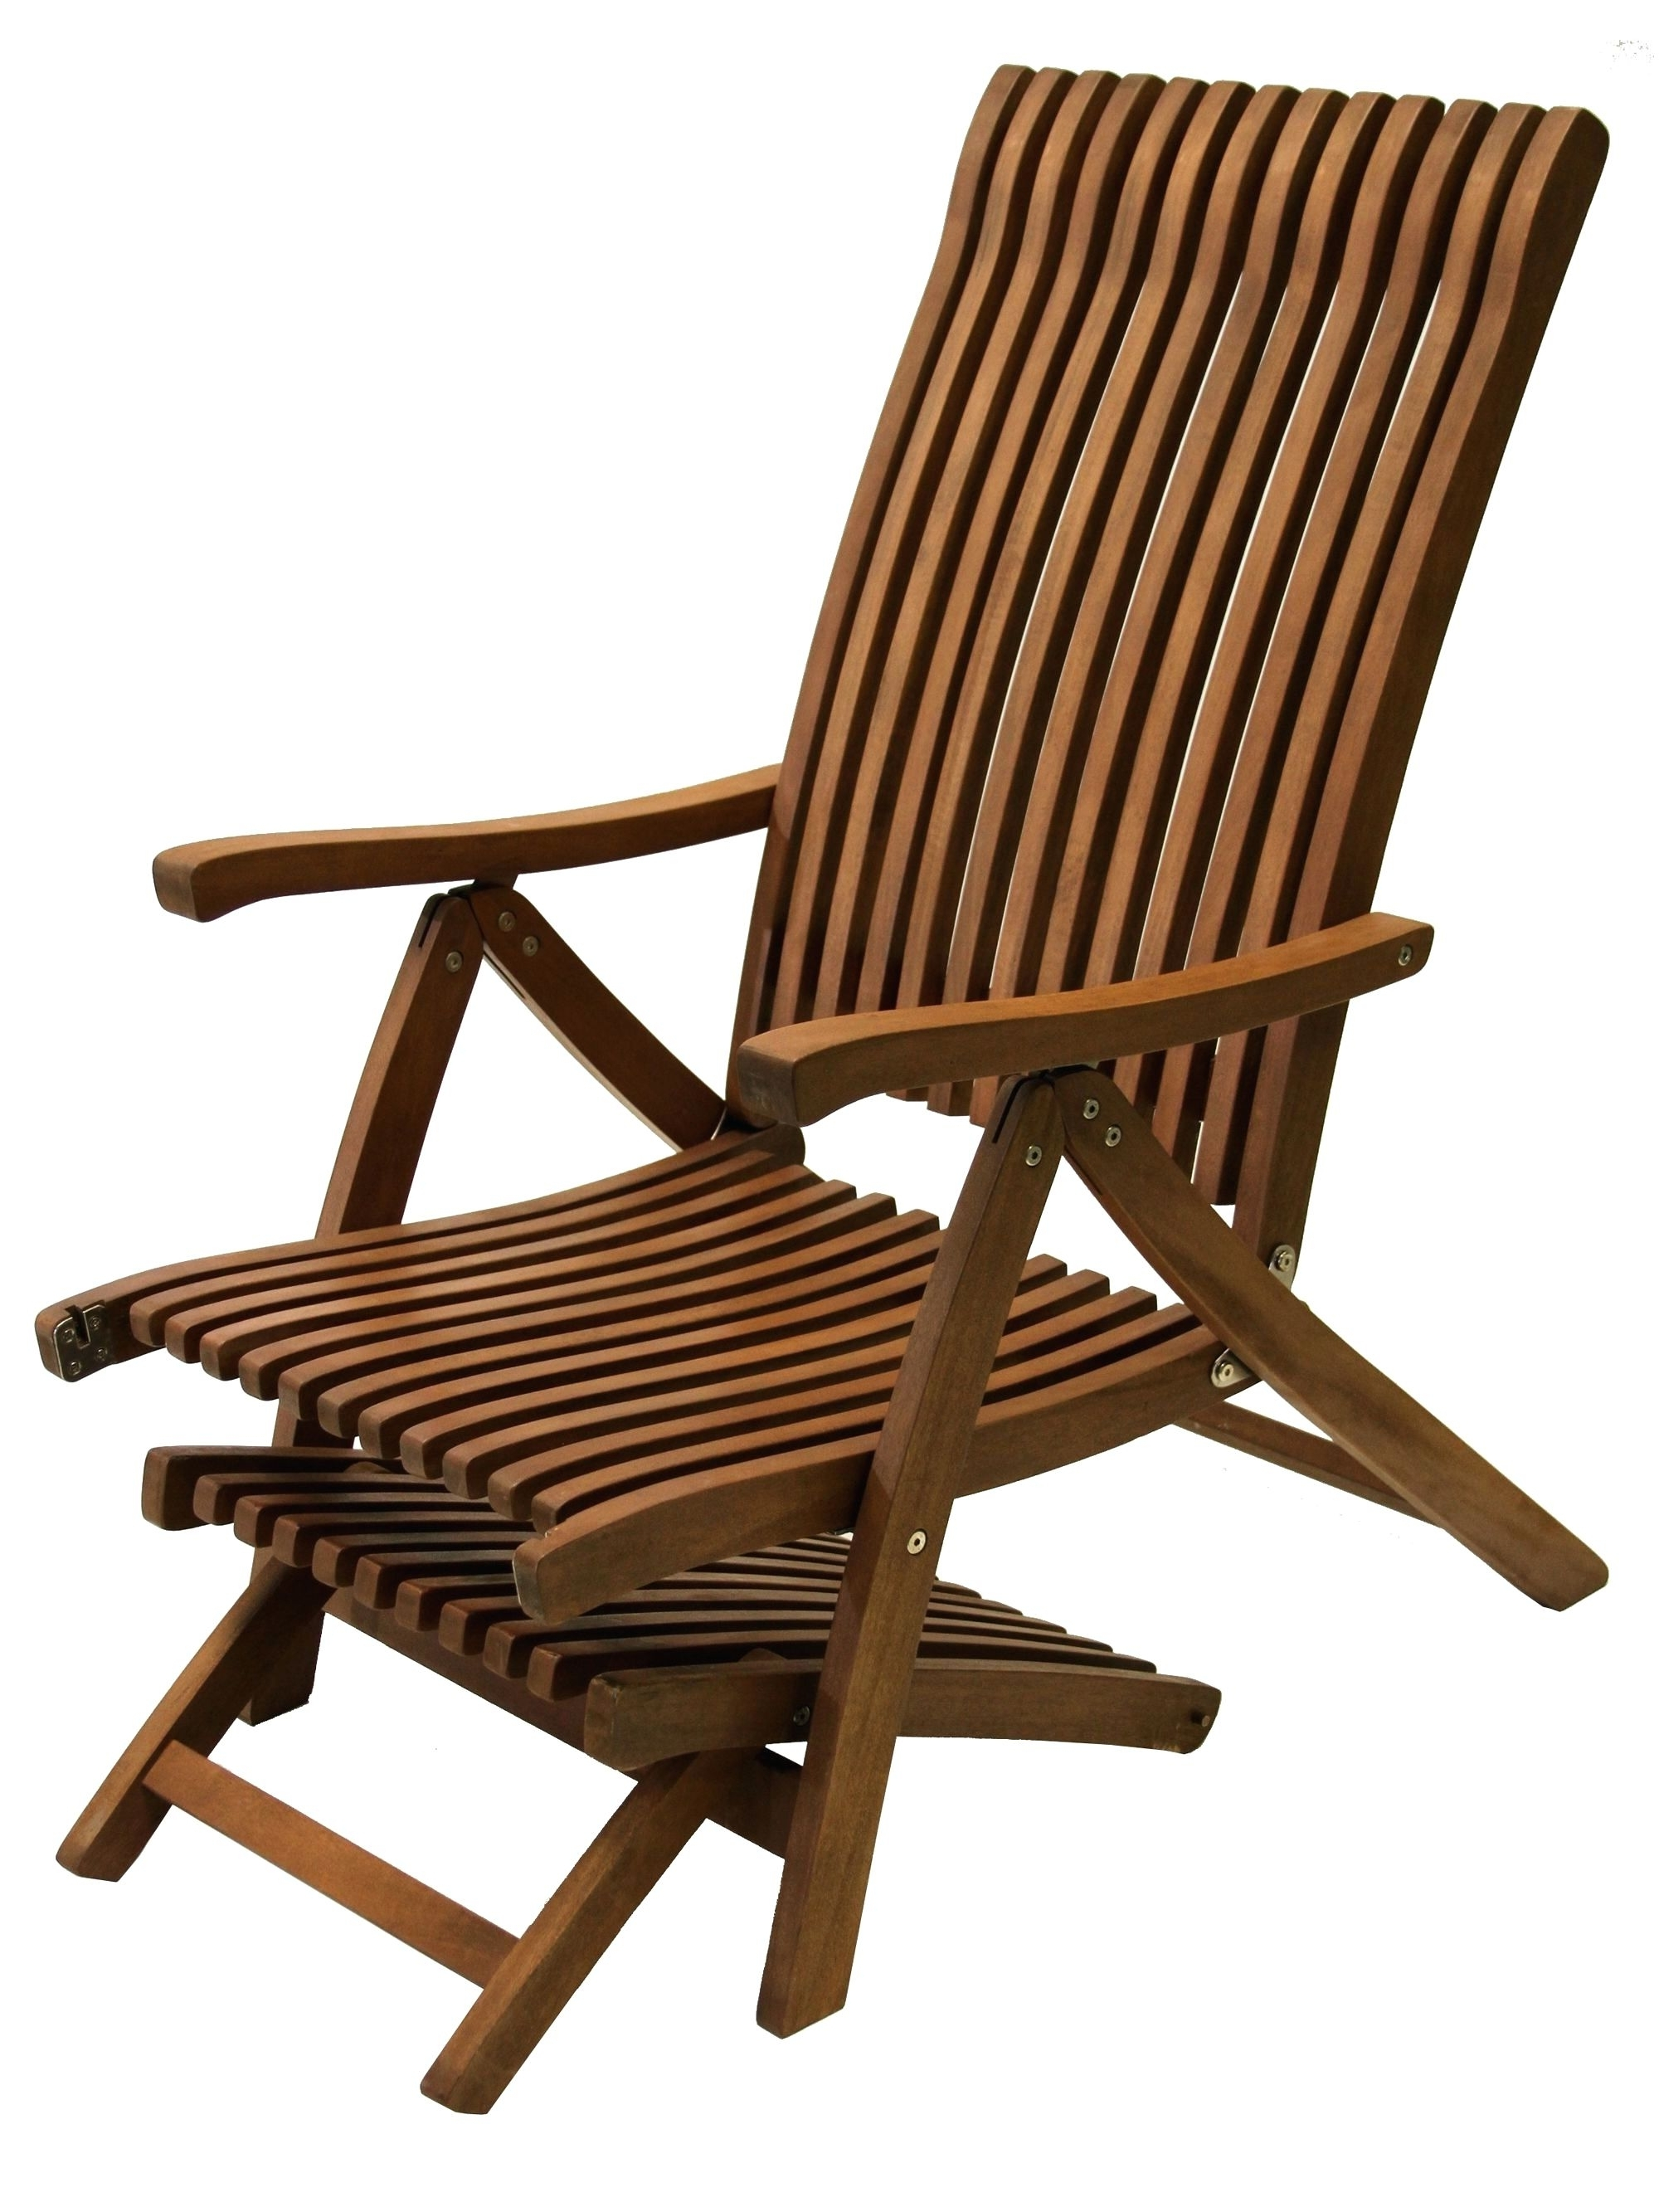 Web Chaise Lounge Lawn Chairs Regarding Most Popular Web Chaise Lounge Chair • Lounge Chairs Ideas (View 10 of 15)